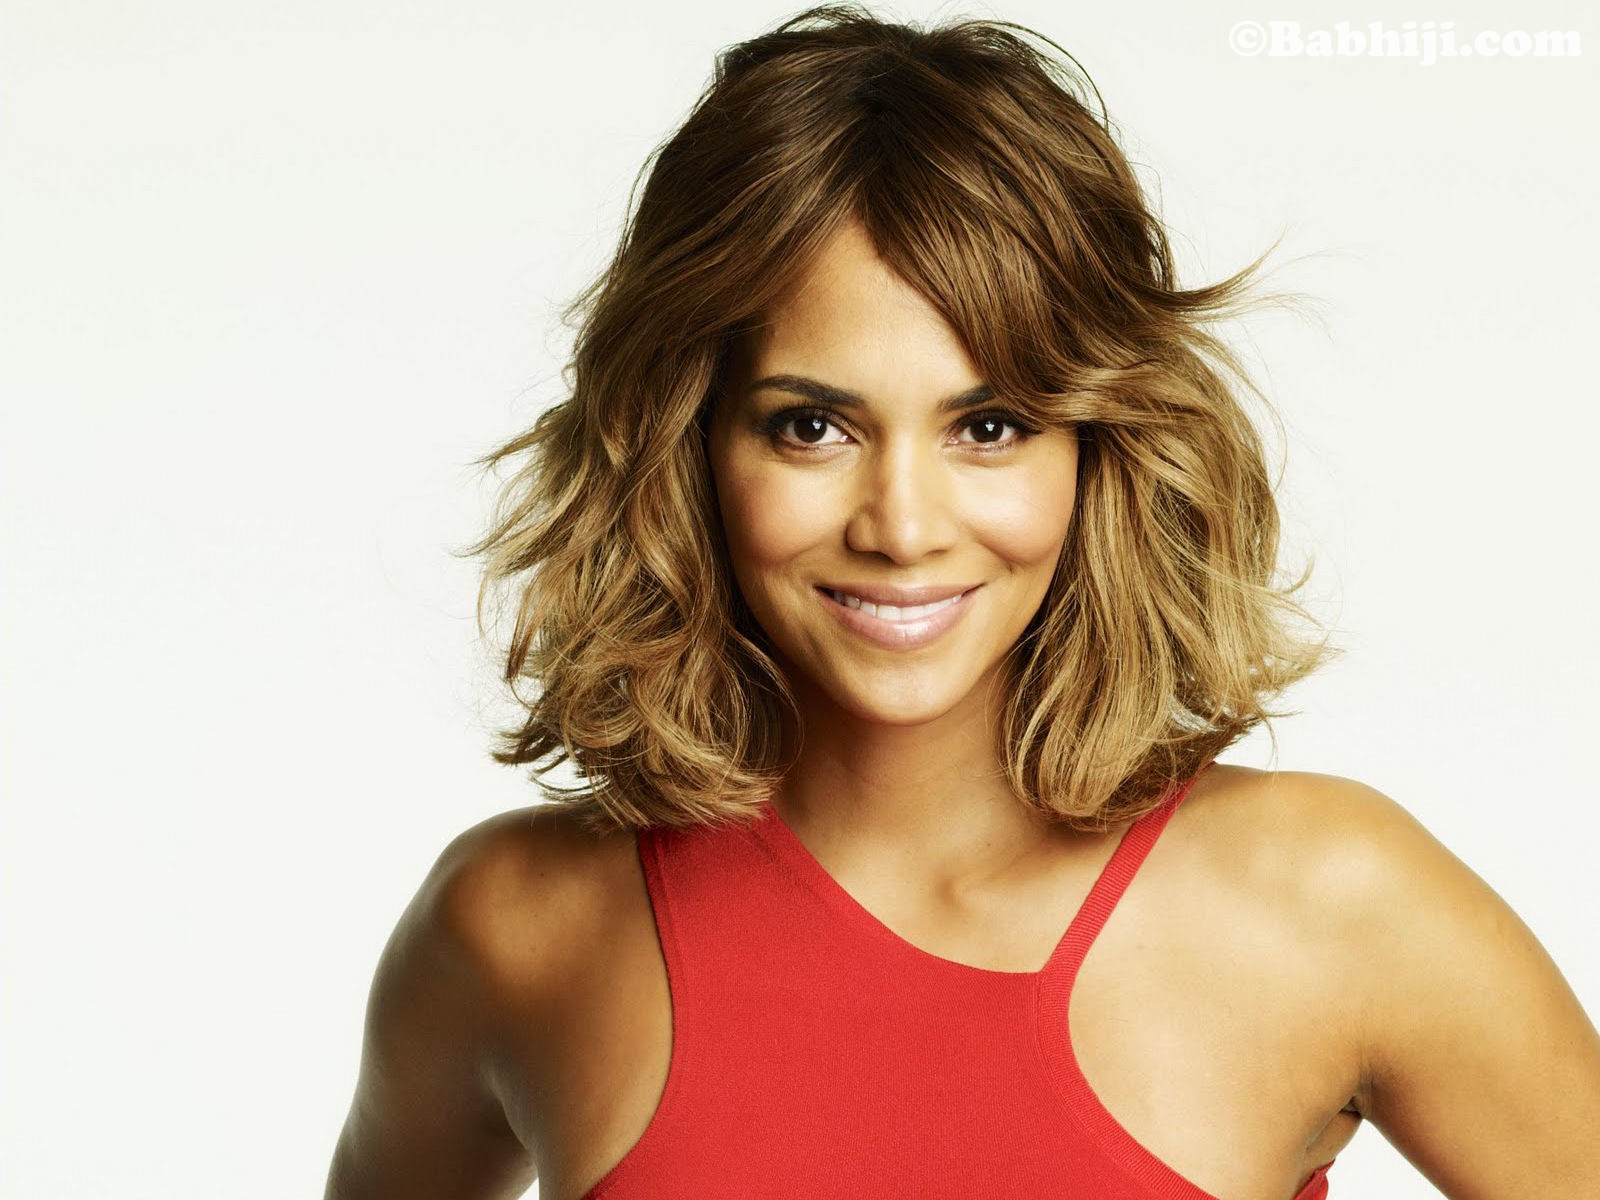 Halle Berry, Halle Berry Wallpaper, Halle Berry Photo, Halle Berry Images